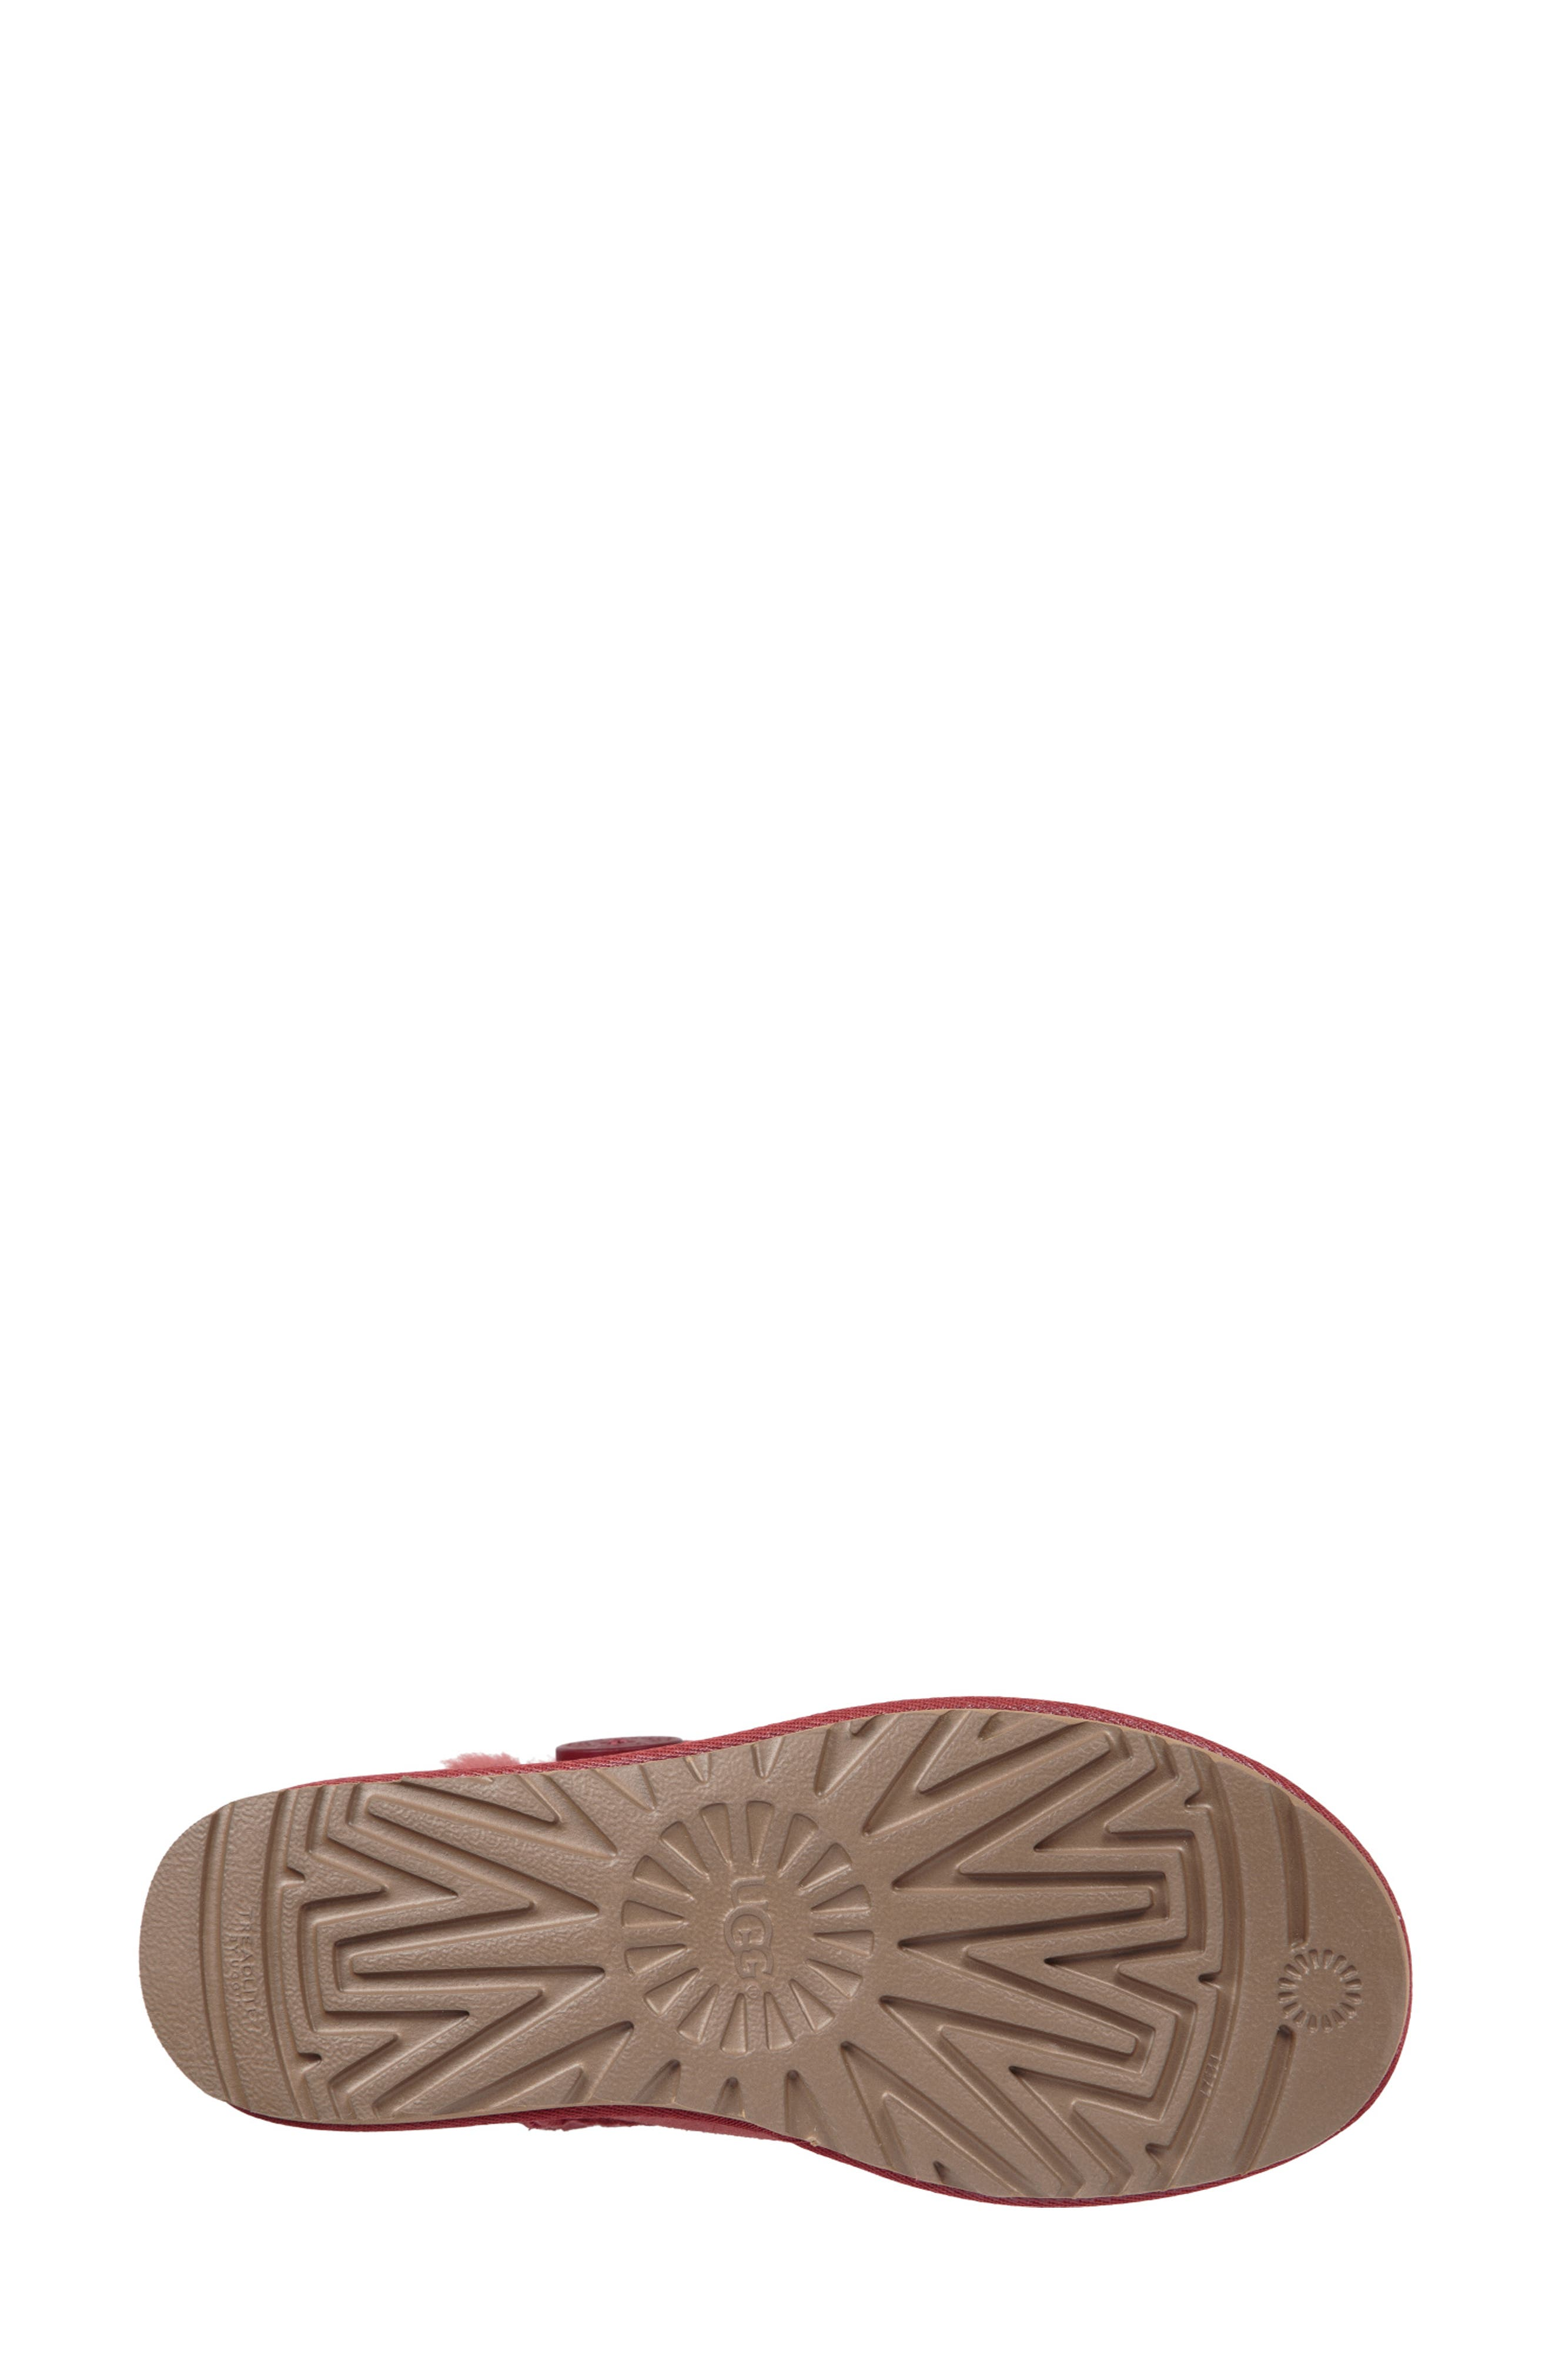 'Mini Bailey Button II' Boot,                             Alternate thumbnail 5, color,                             REDWOOD SUEDE